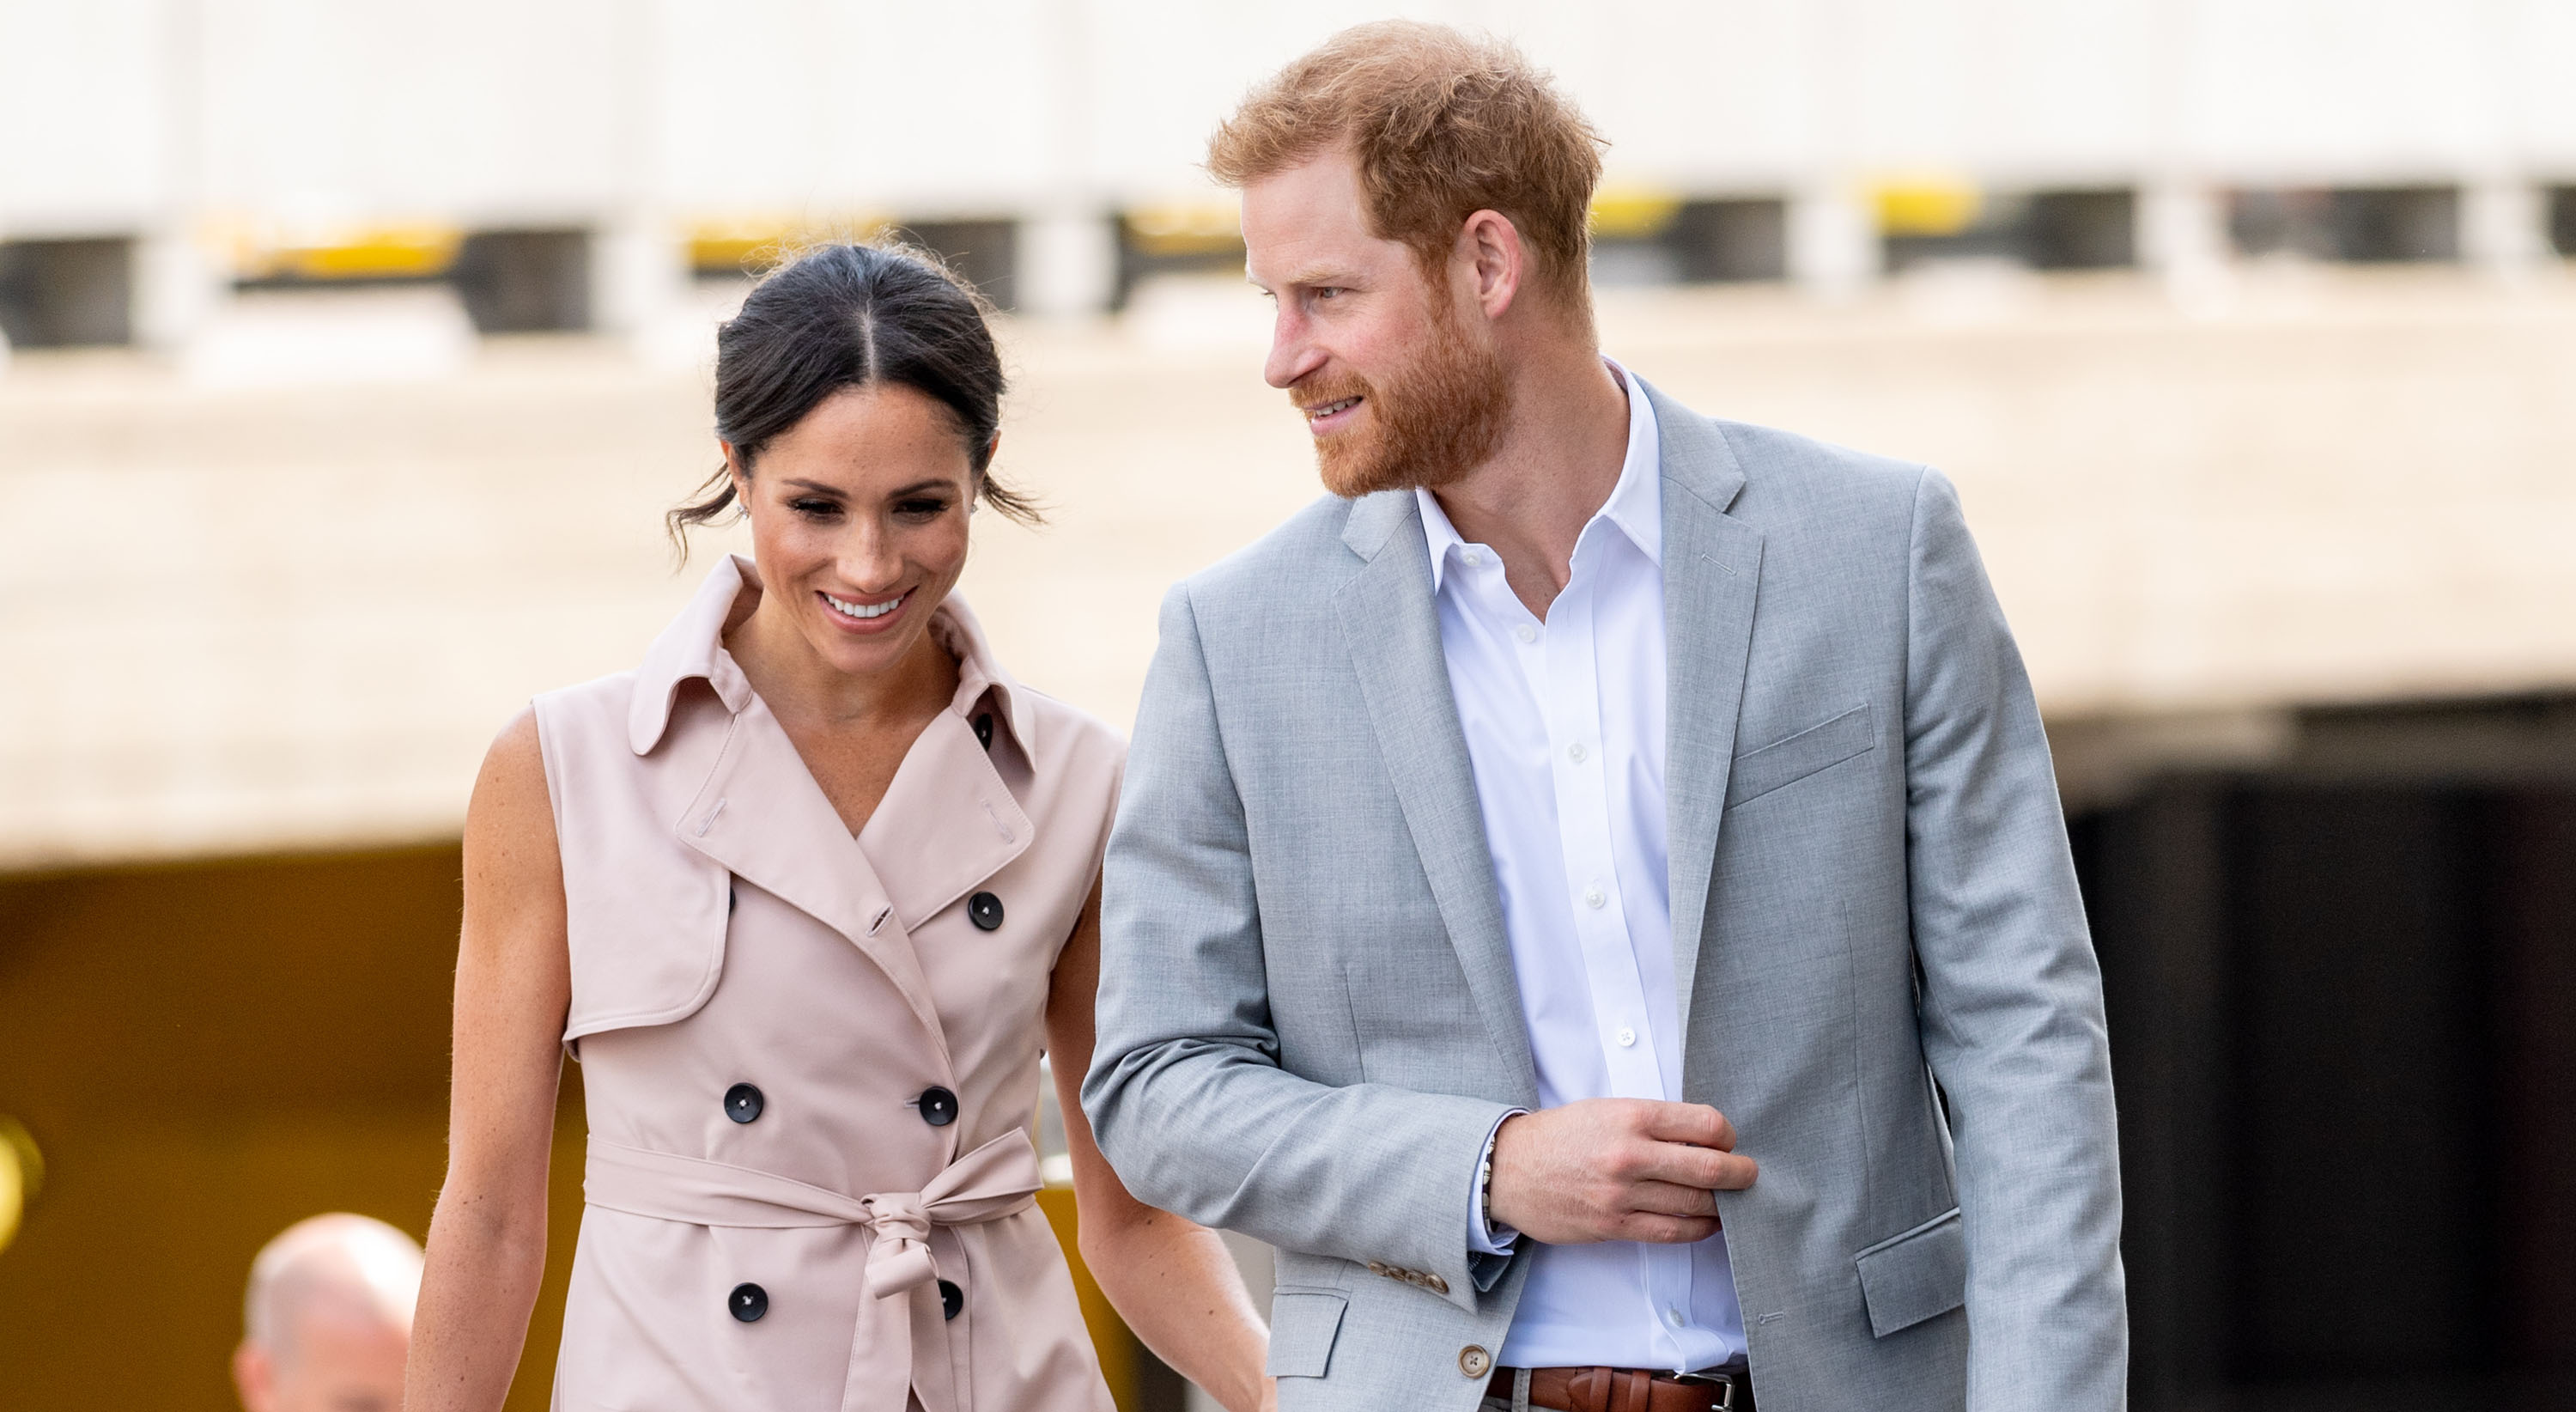 Prince Harry and Meghan Markle might visit the  U.S. soon, and here's everything we know